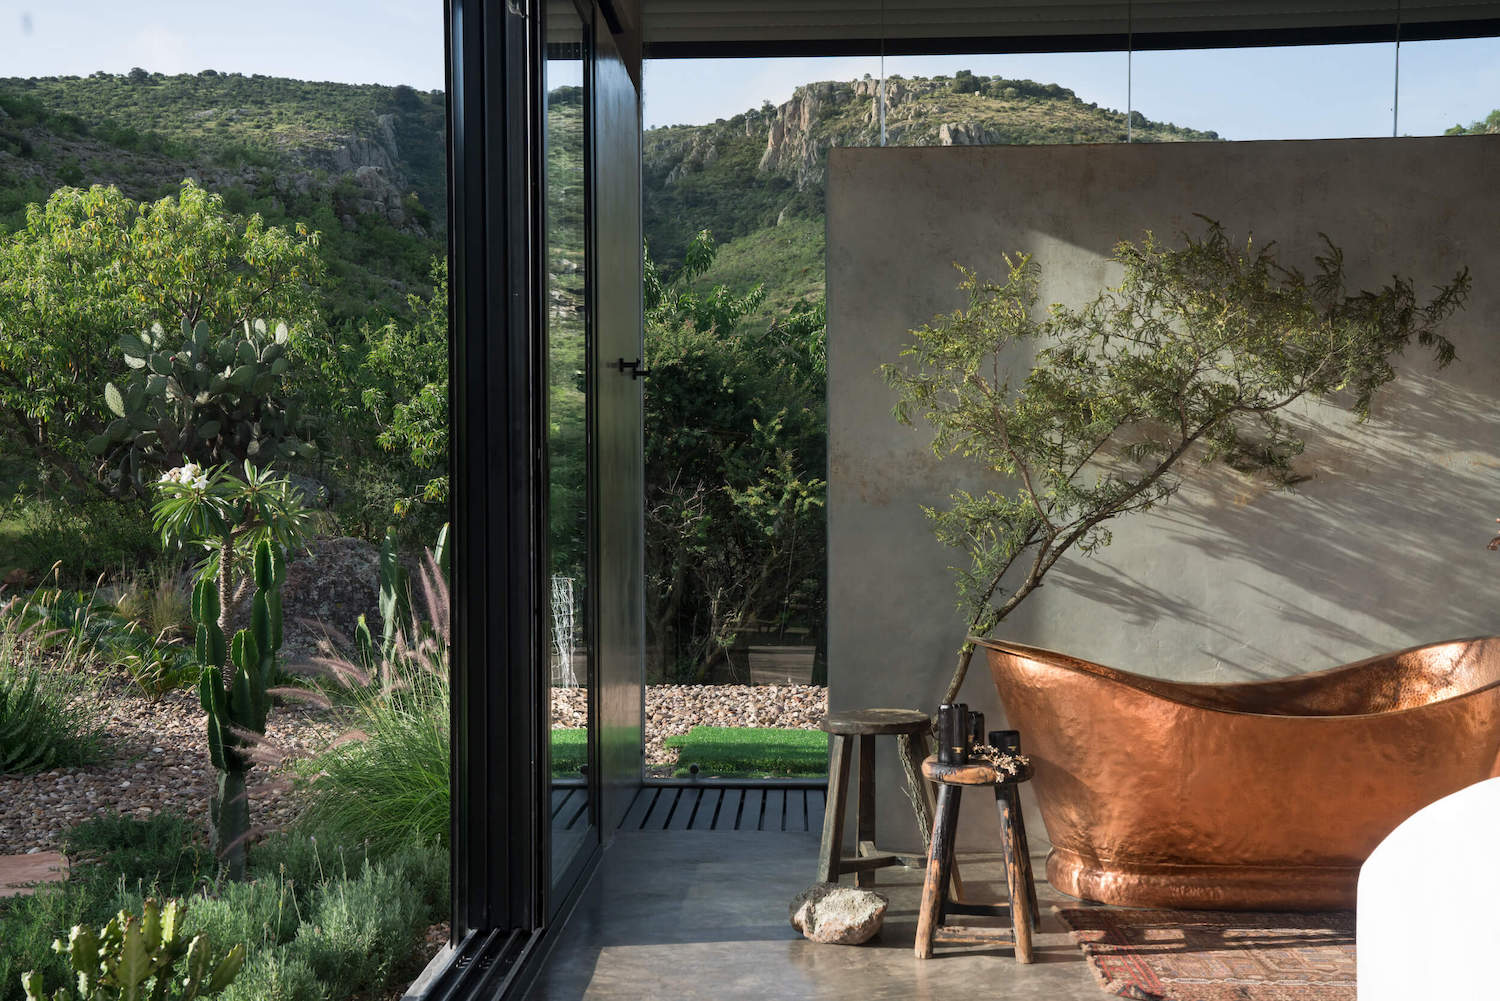 Casa Etérea is a mirrored cabin on the slopes of a volcano in Mexico